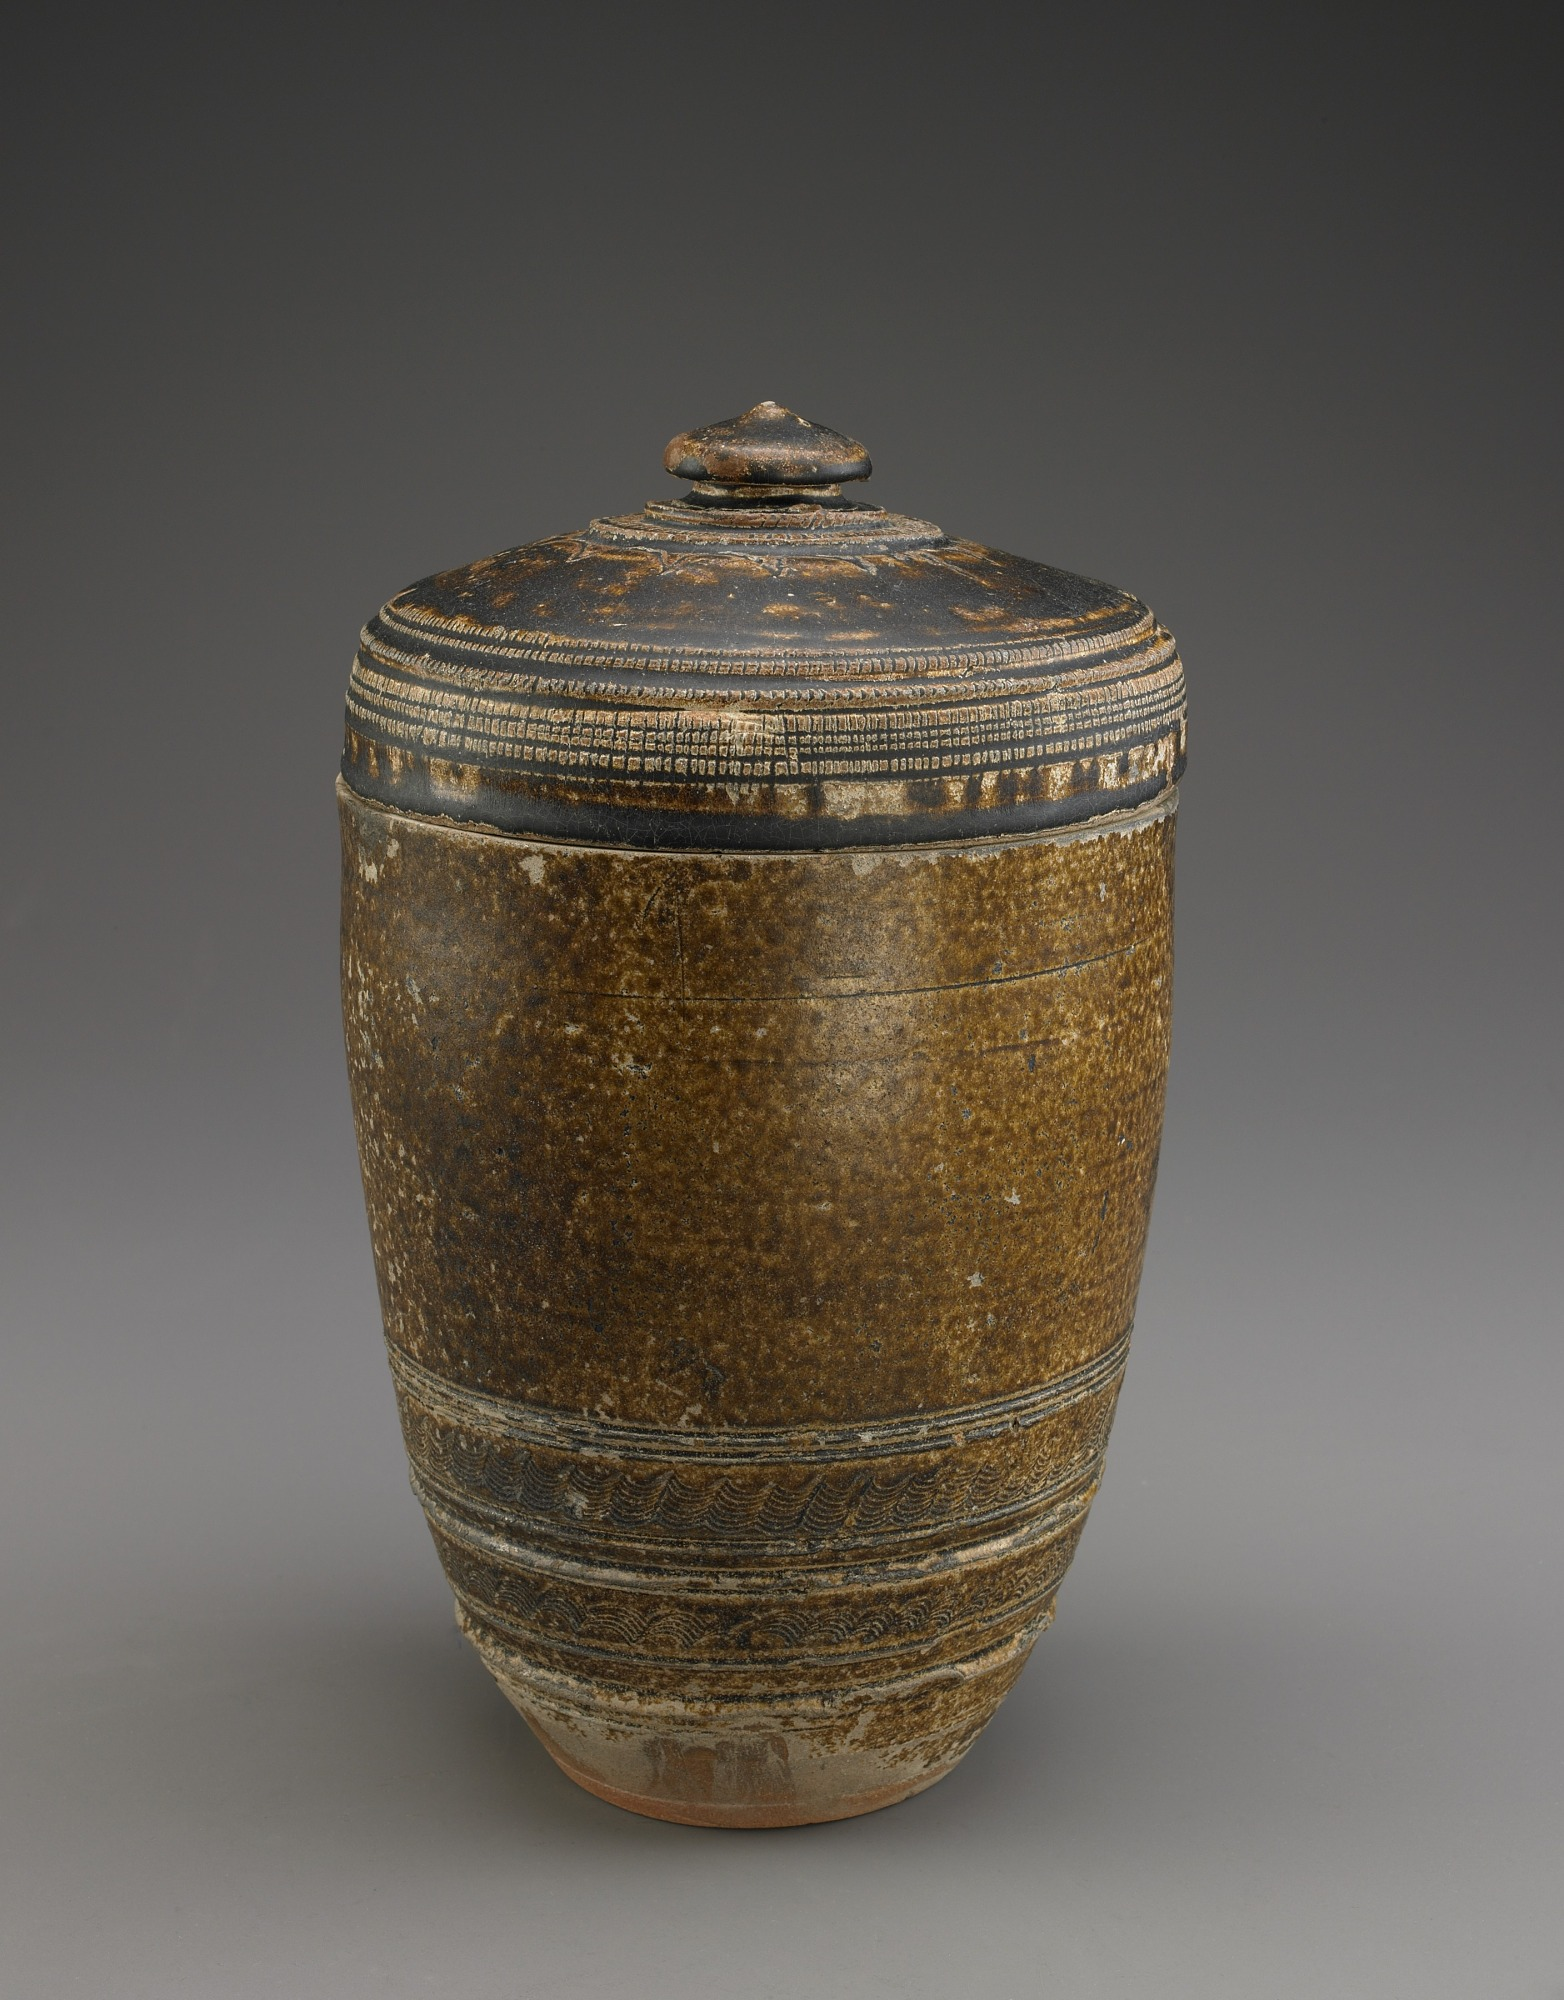 abvw1: Cylindrical jar with lid